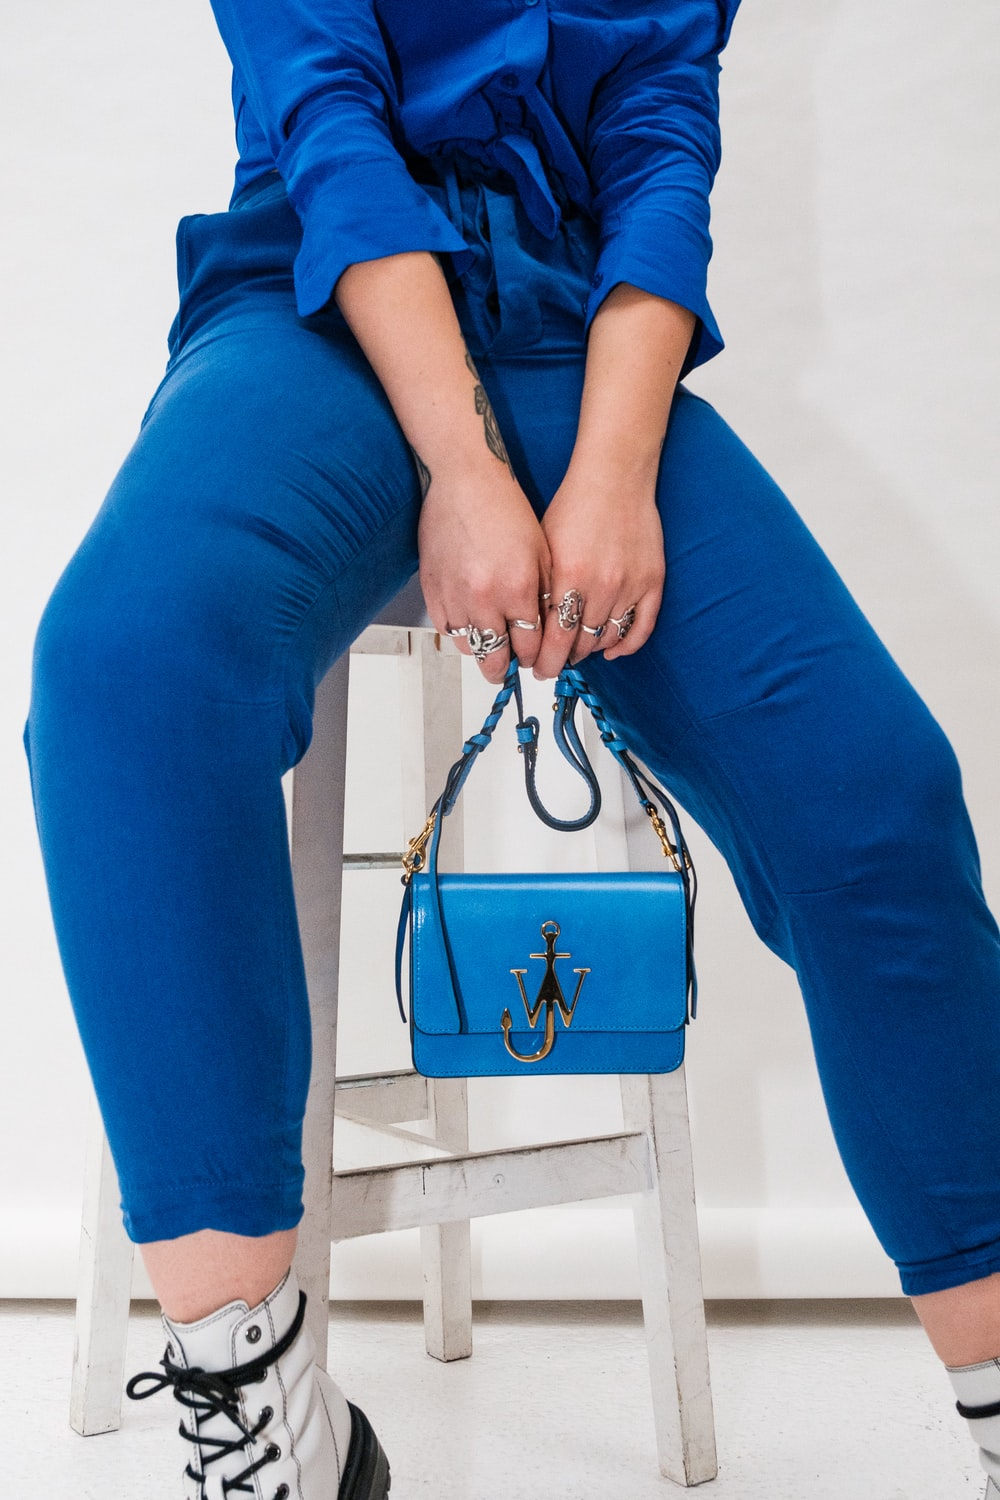 person in blue pants sitting on white wooden bench